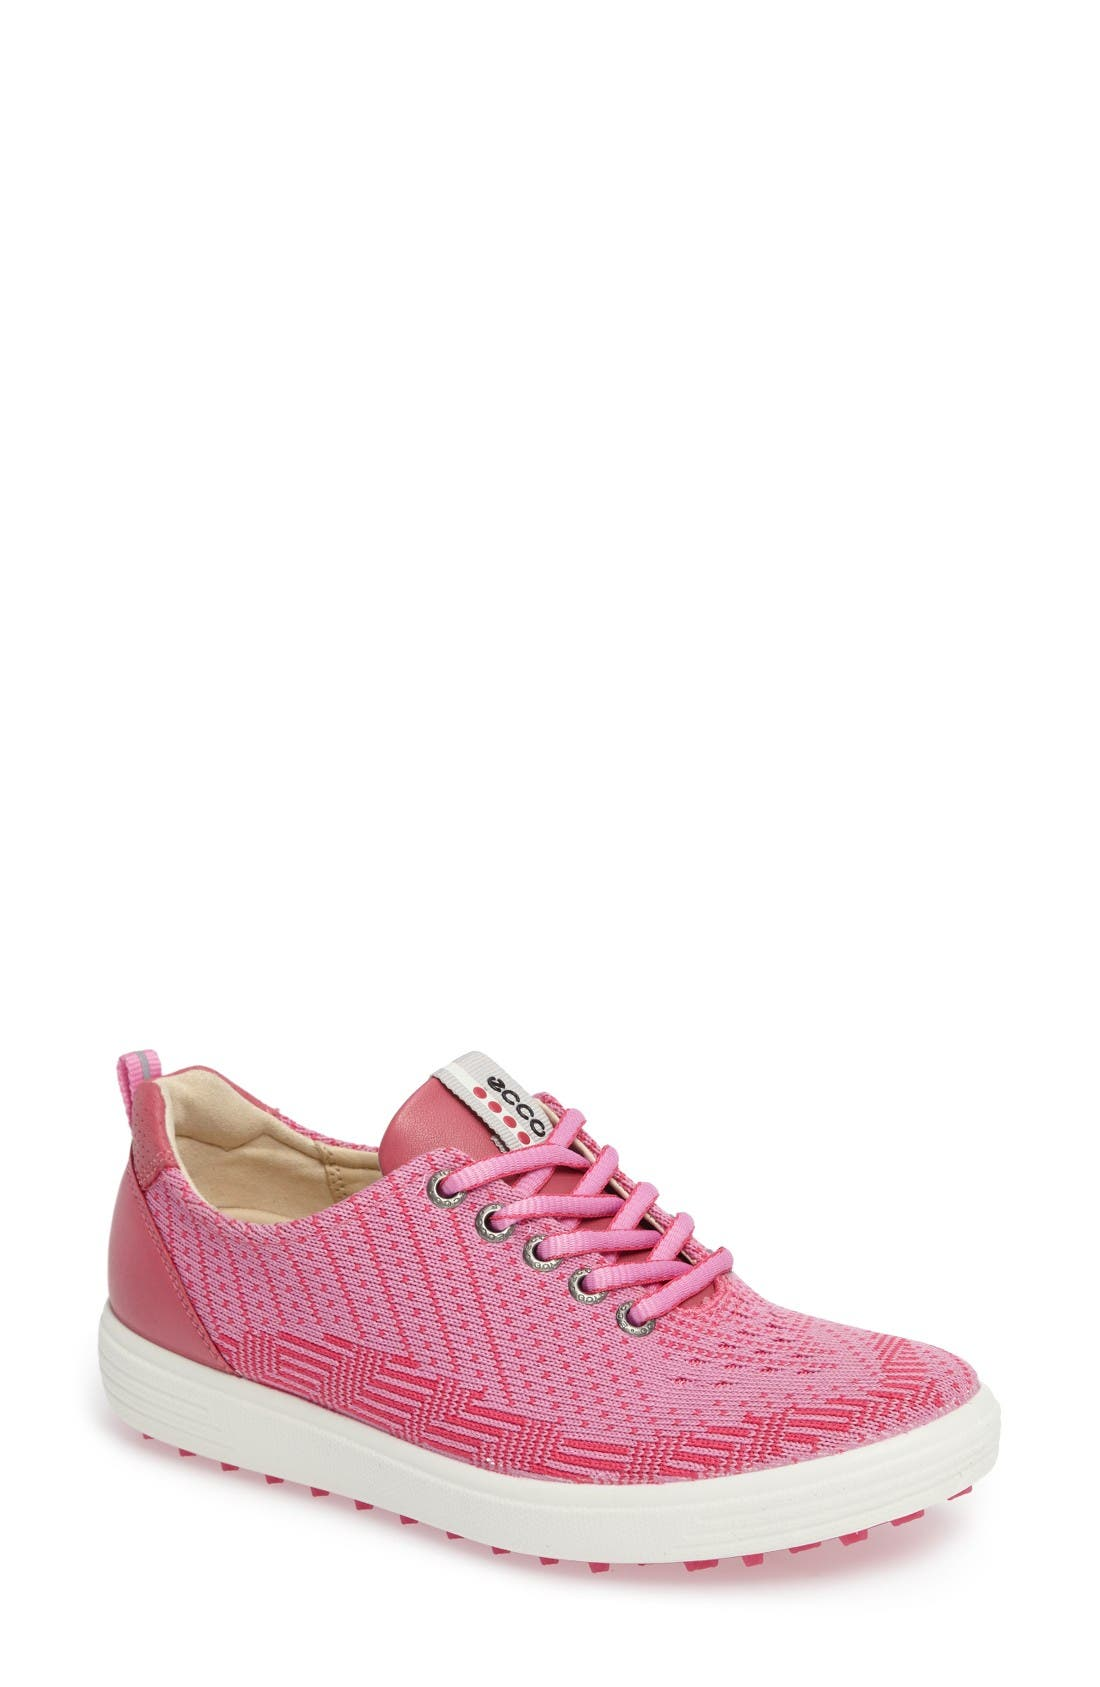 Casual Hybrid Knit Golf Sneaker,                             Main thumbnail 1, color,                             Pink/ Beetroot Leather